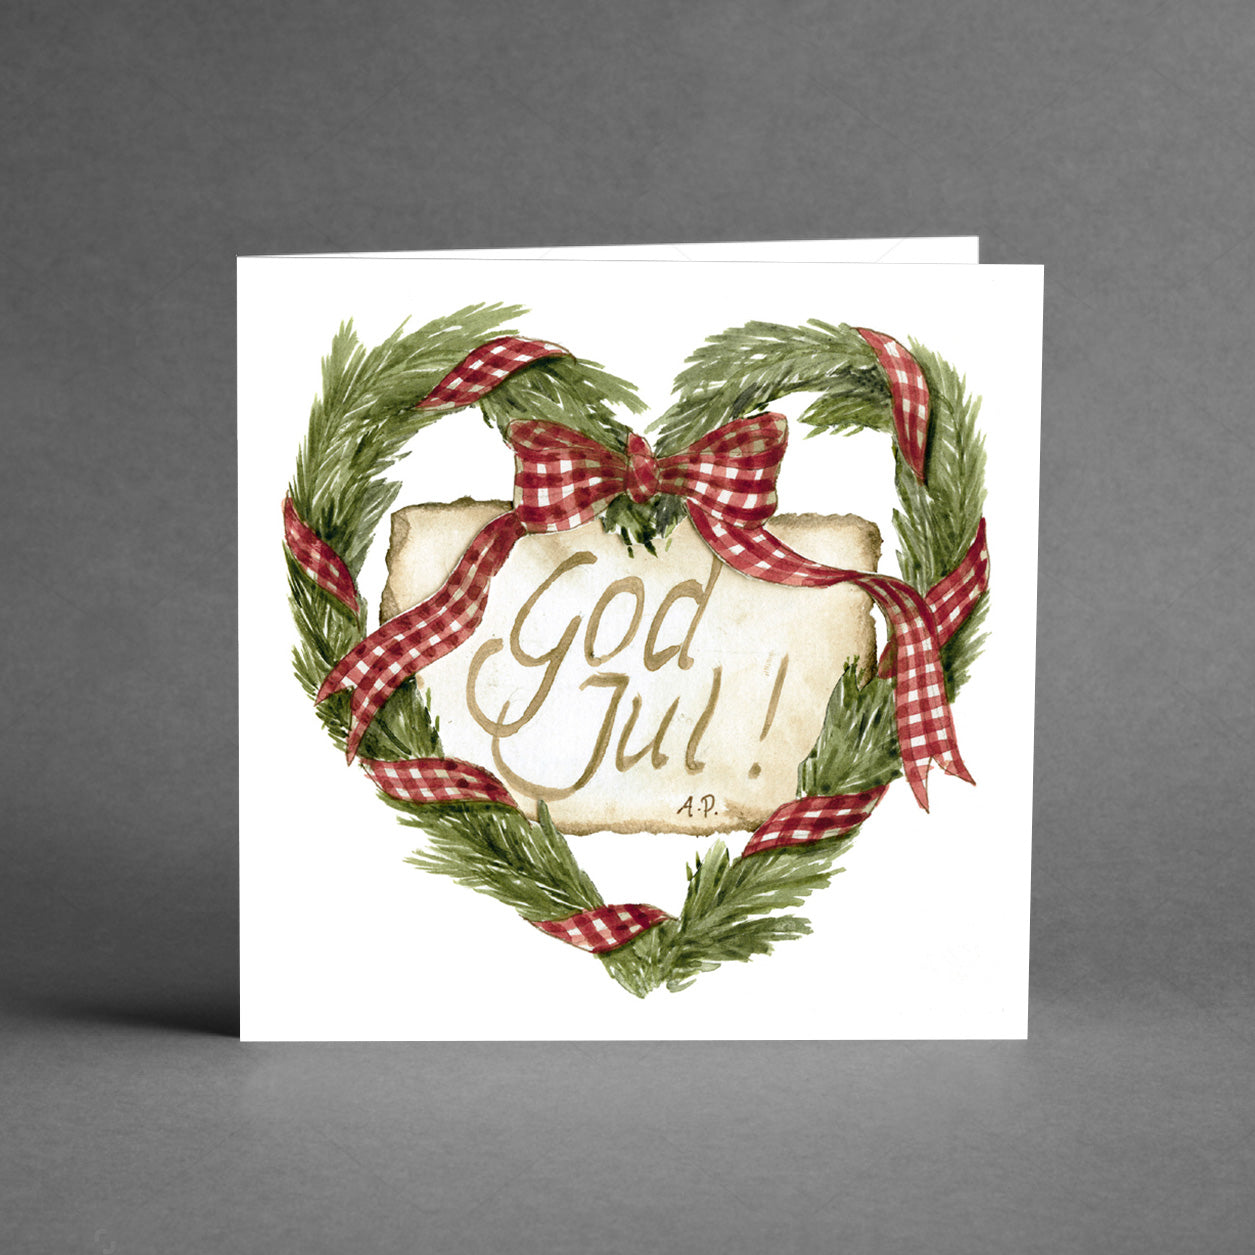 Kvadratkort - God jul krans [20-pack]